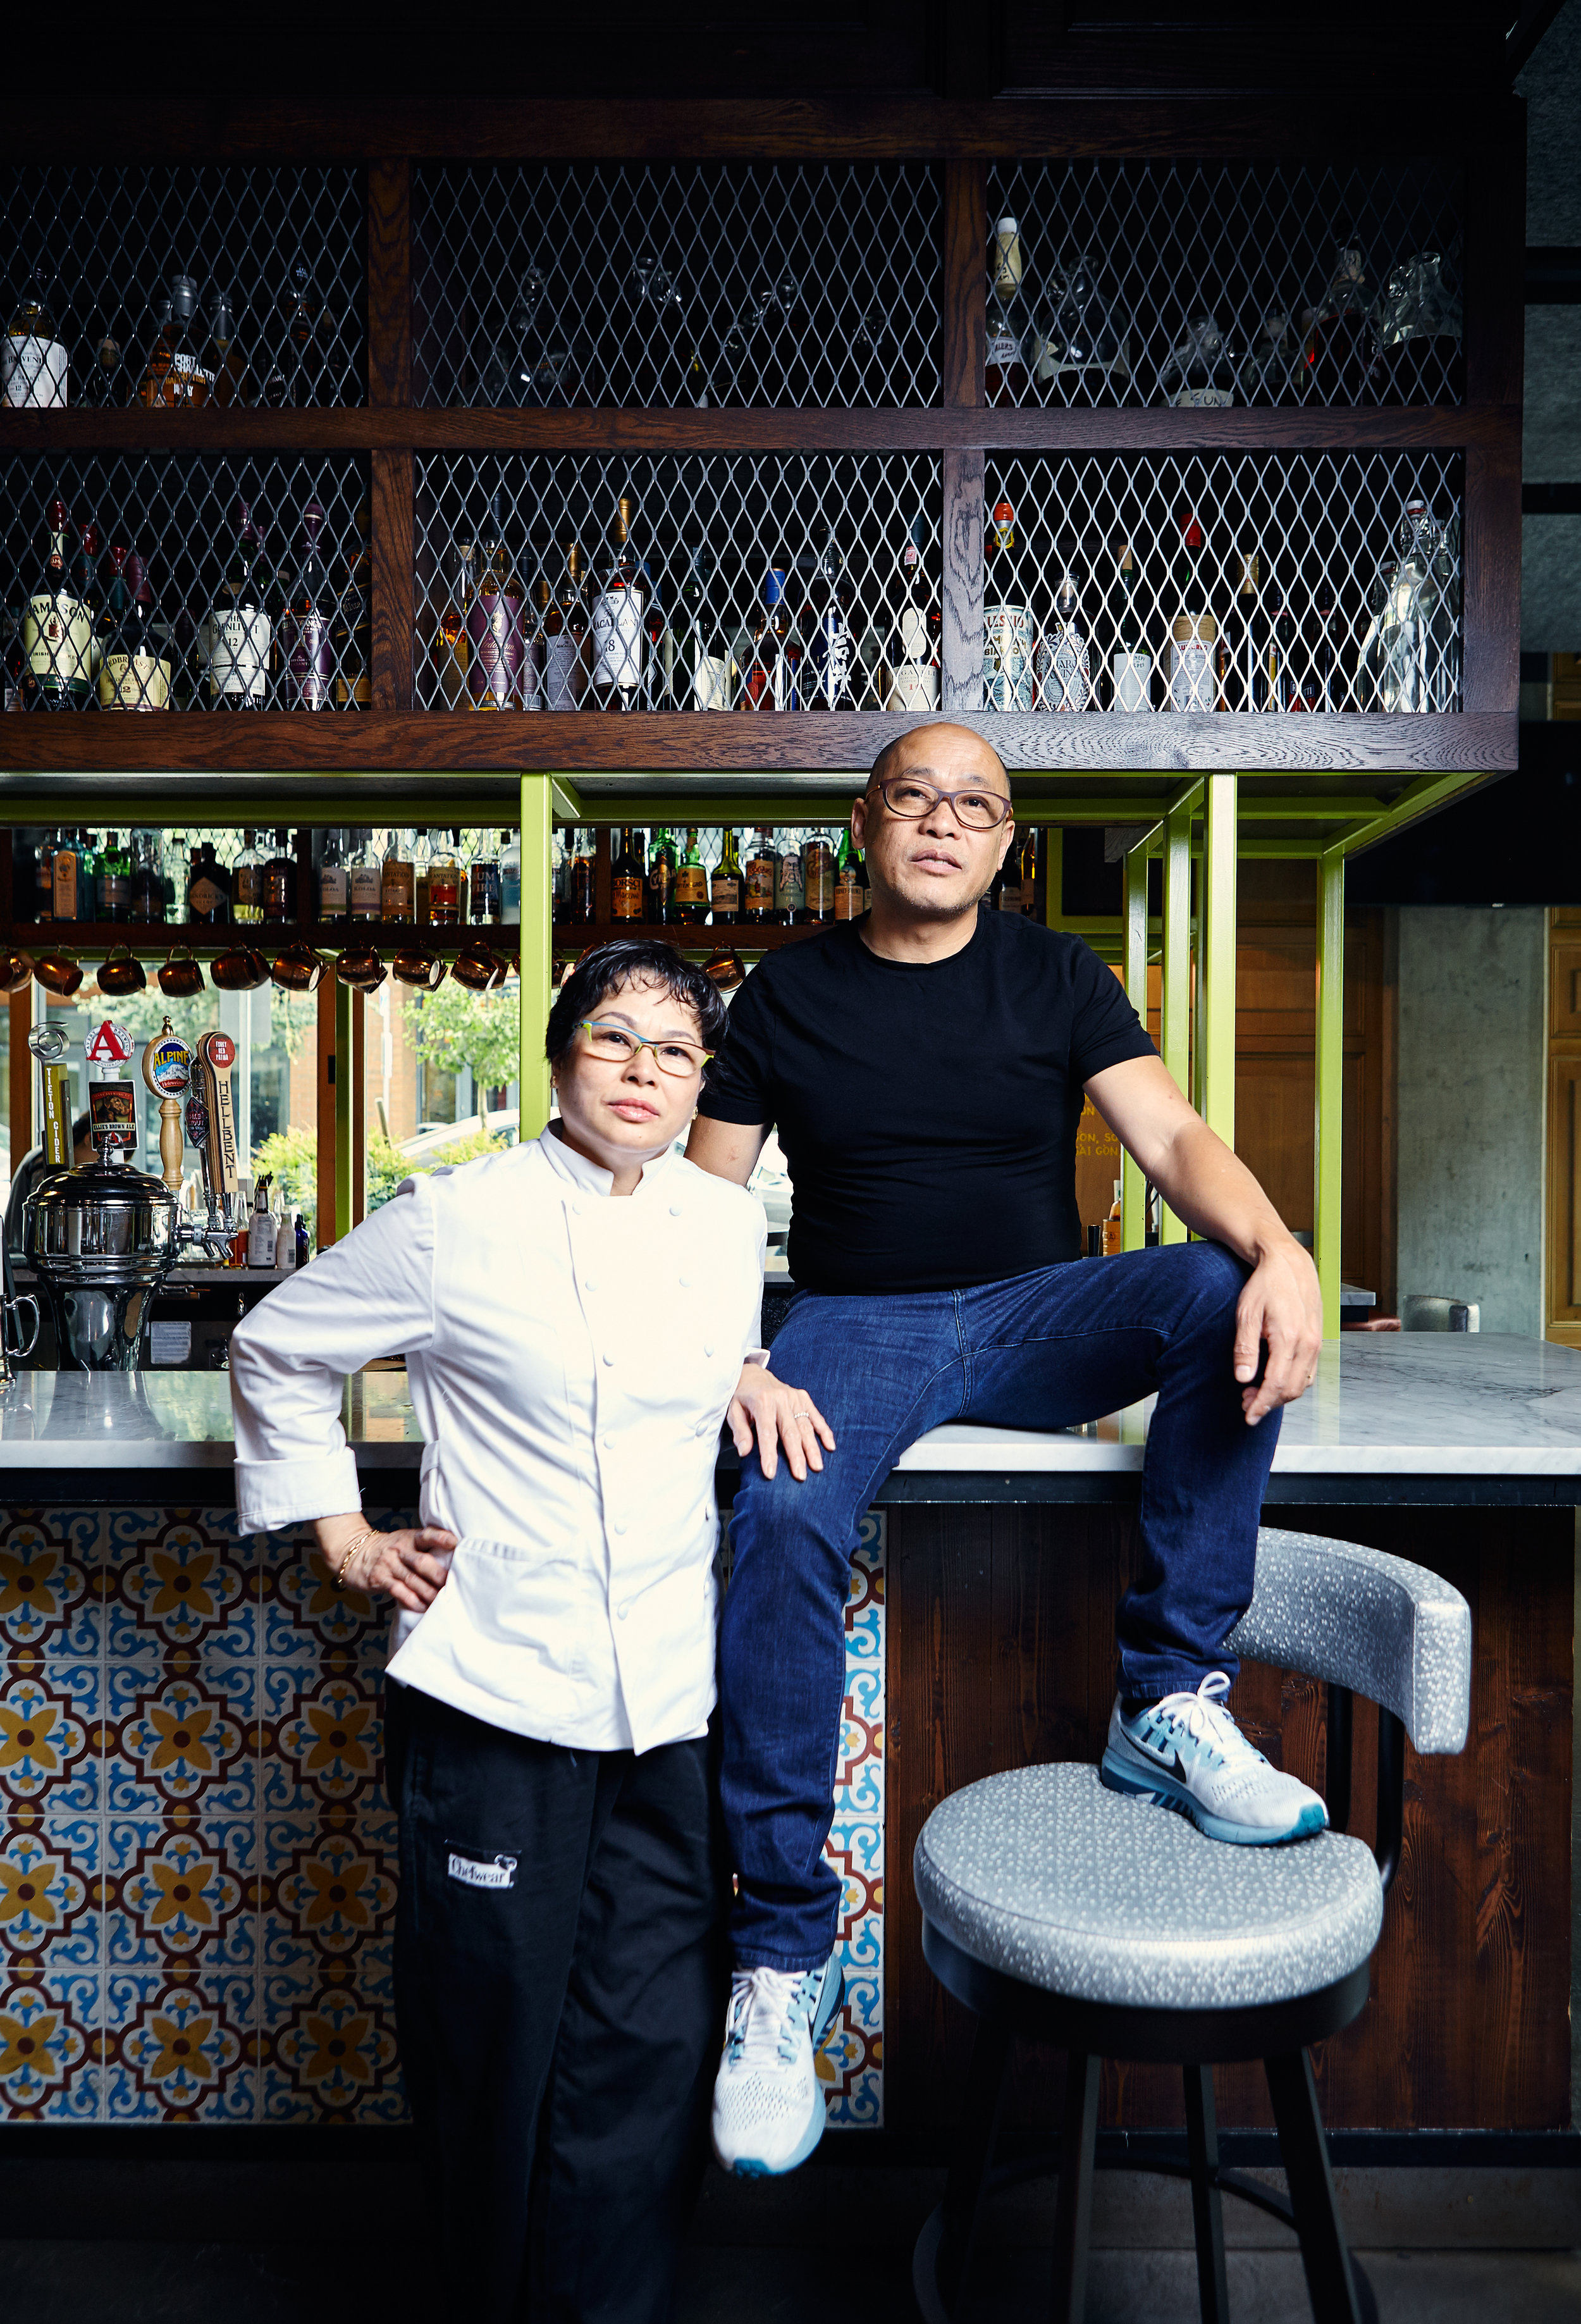 Portrait of BaBar owners Sophie and Eric Bahn for Discover SLU Magazine.